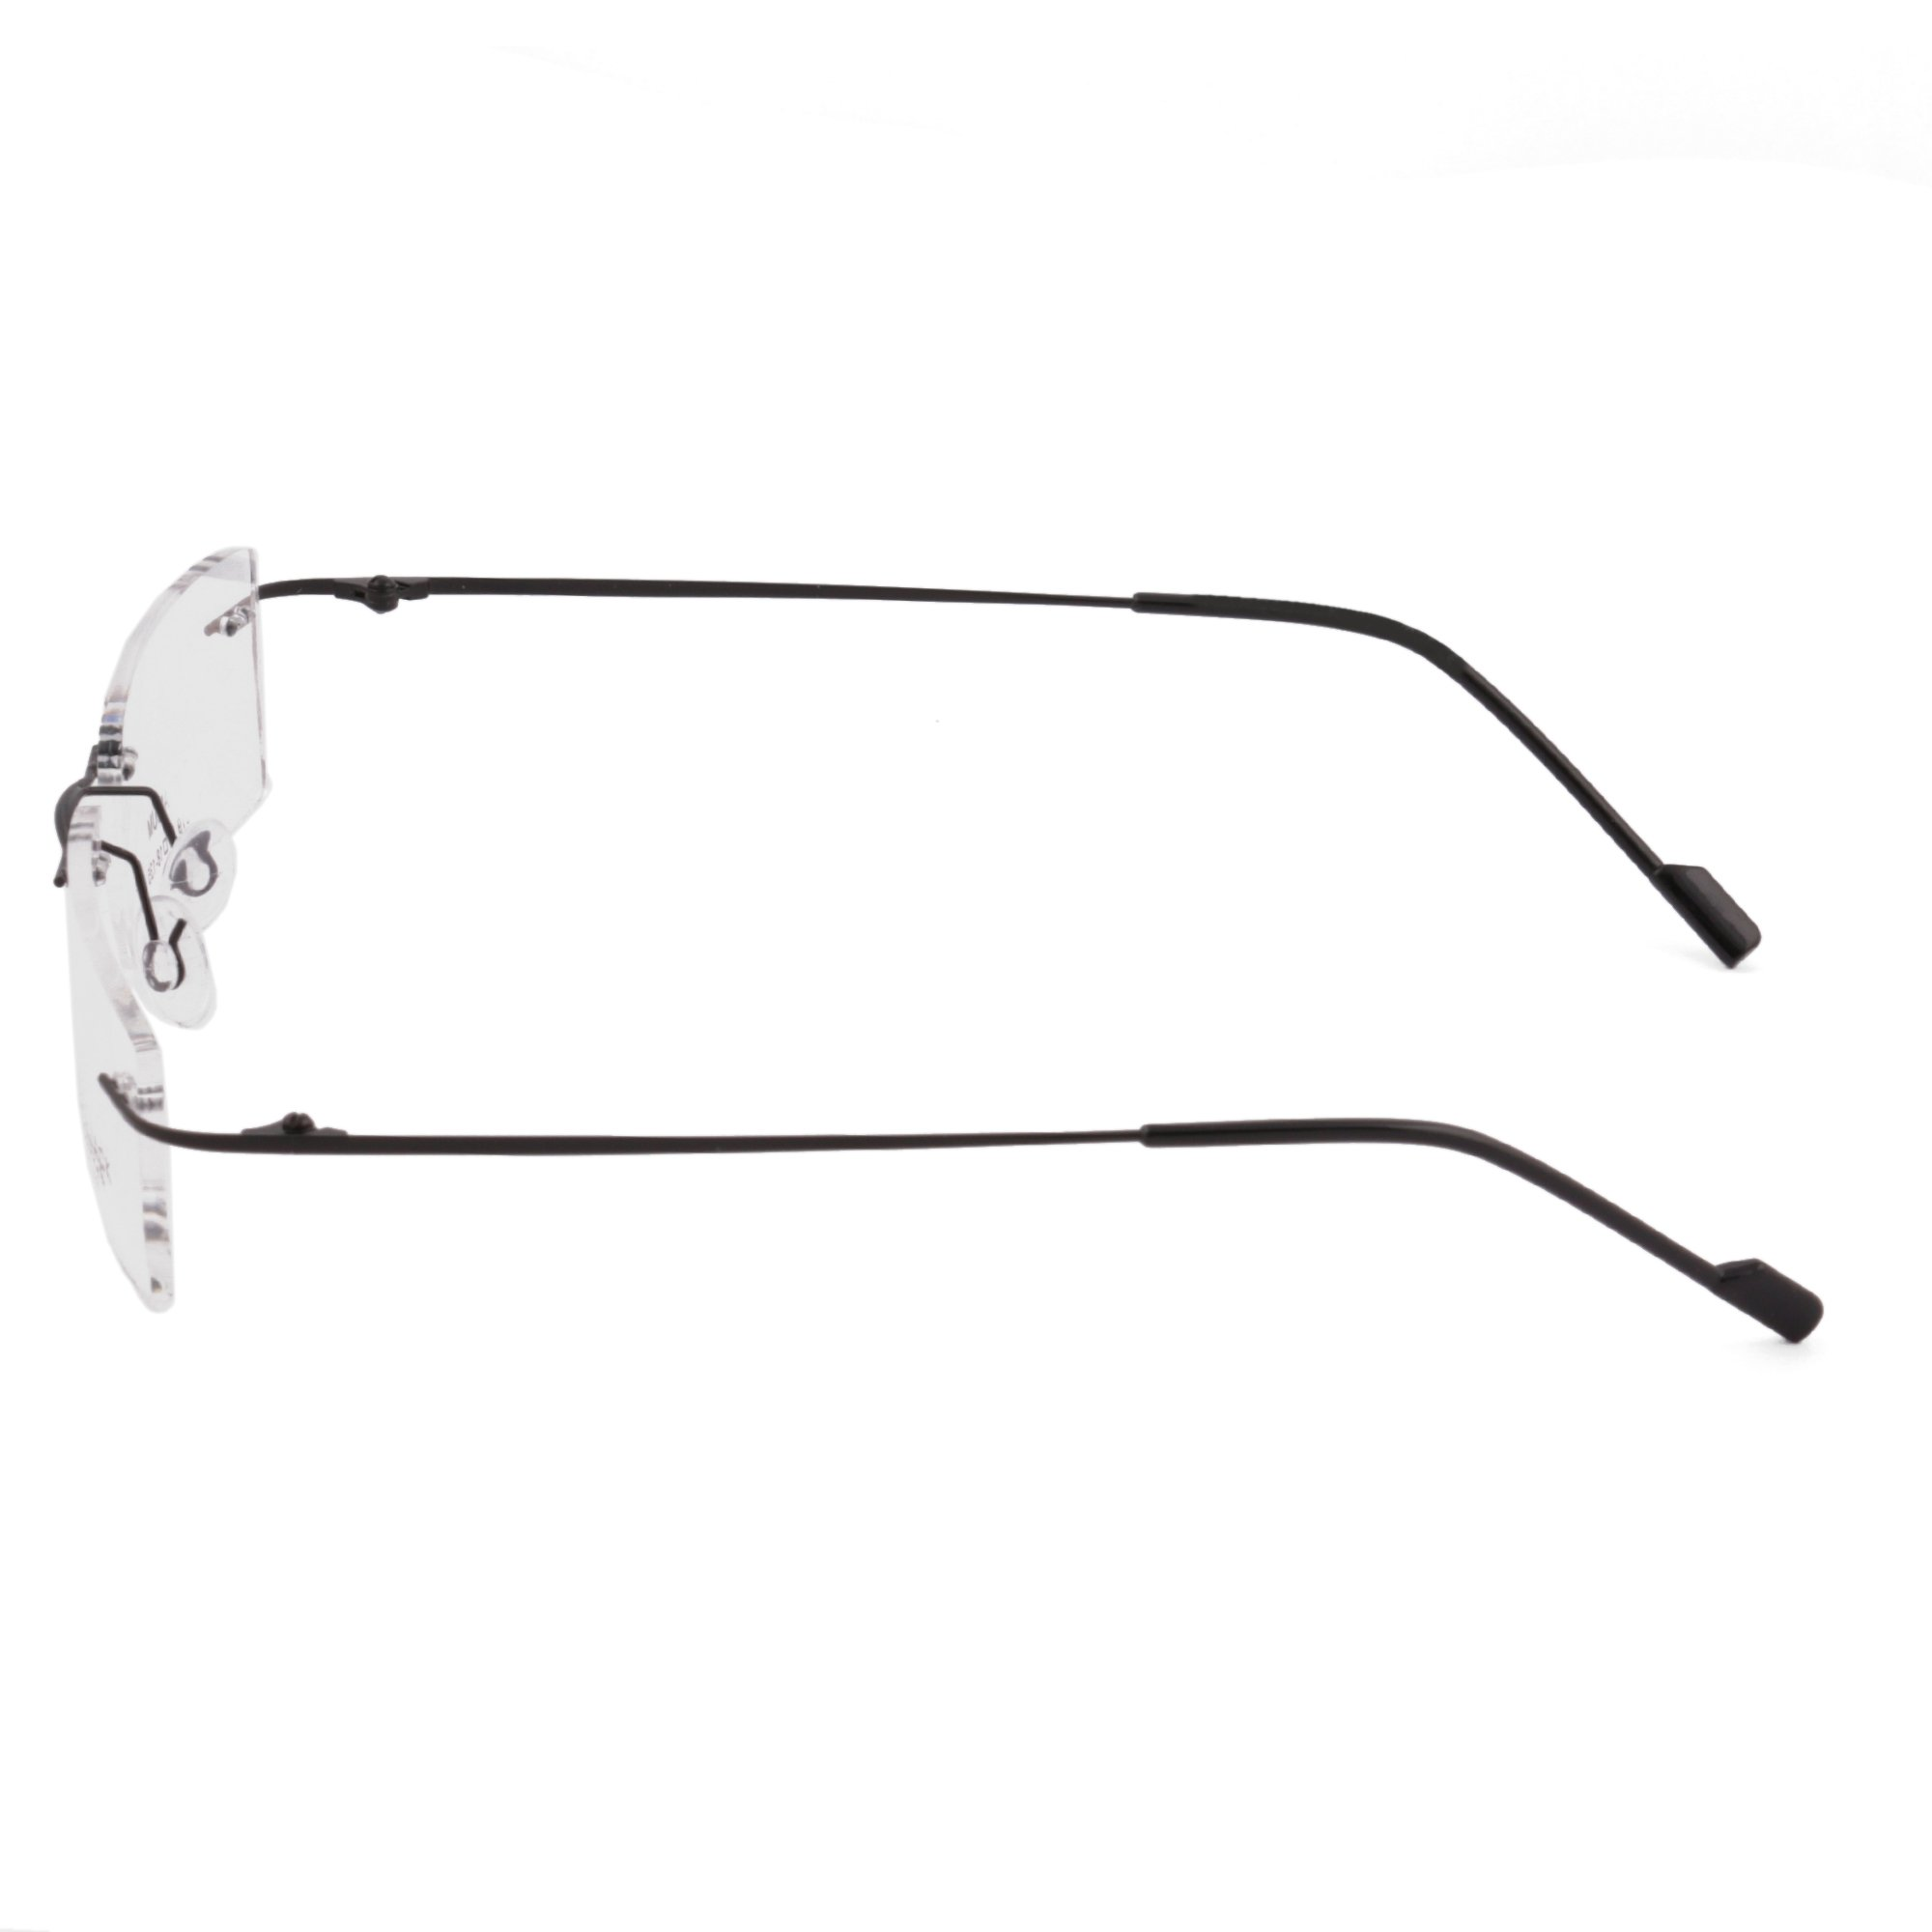 6d60c8e389 Royal Son Rimless Rectangular Spectacle Frame For Men And Women ...